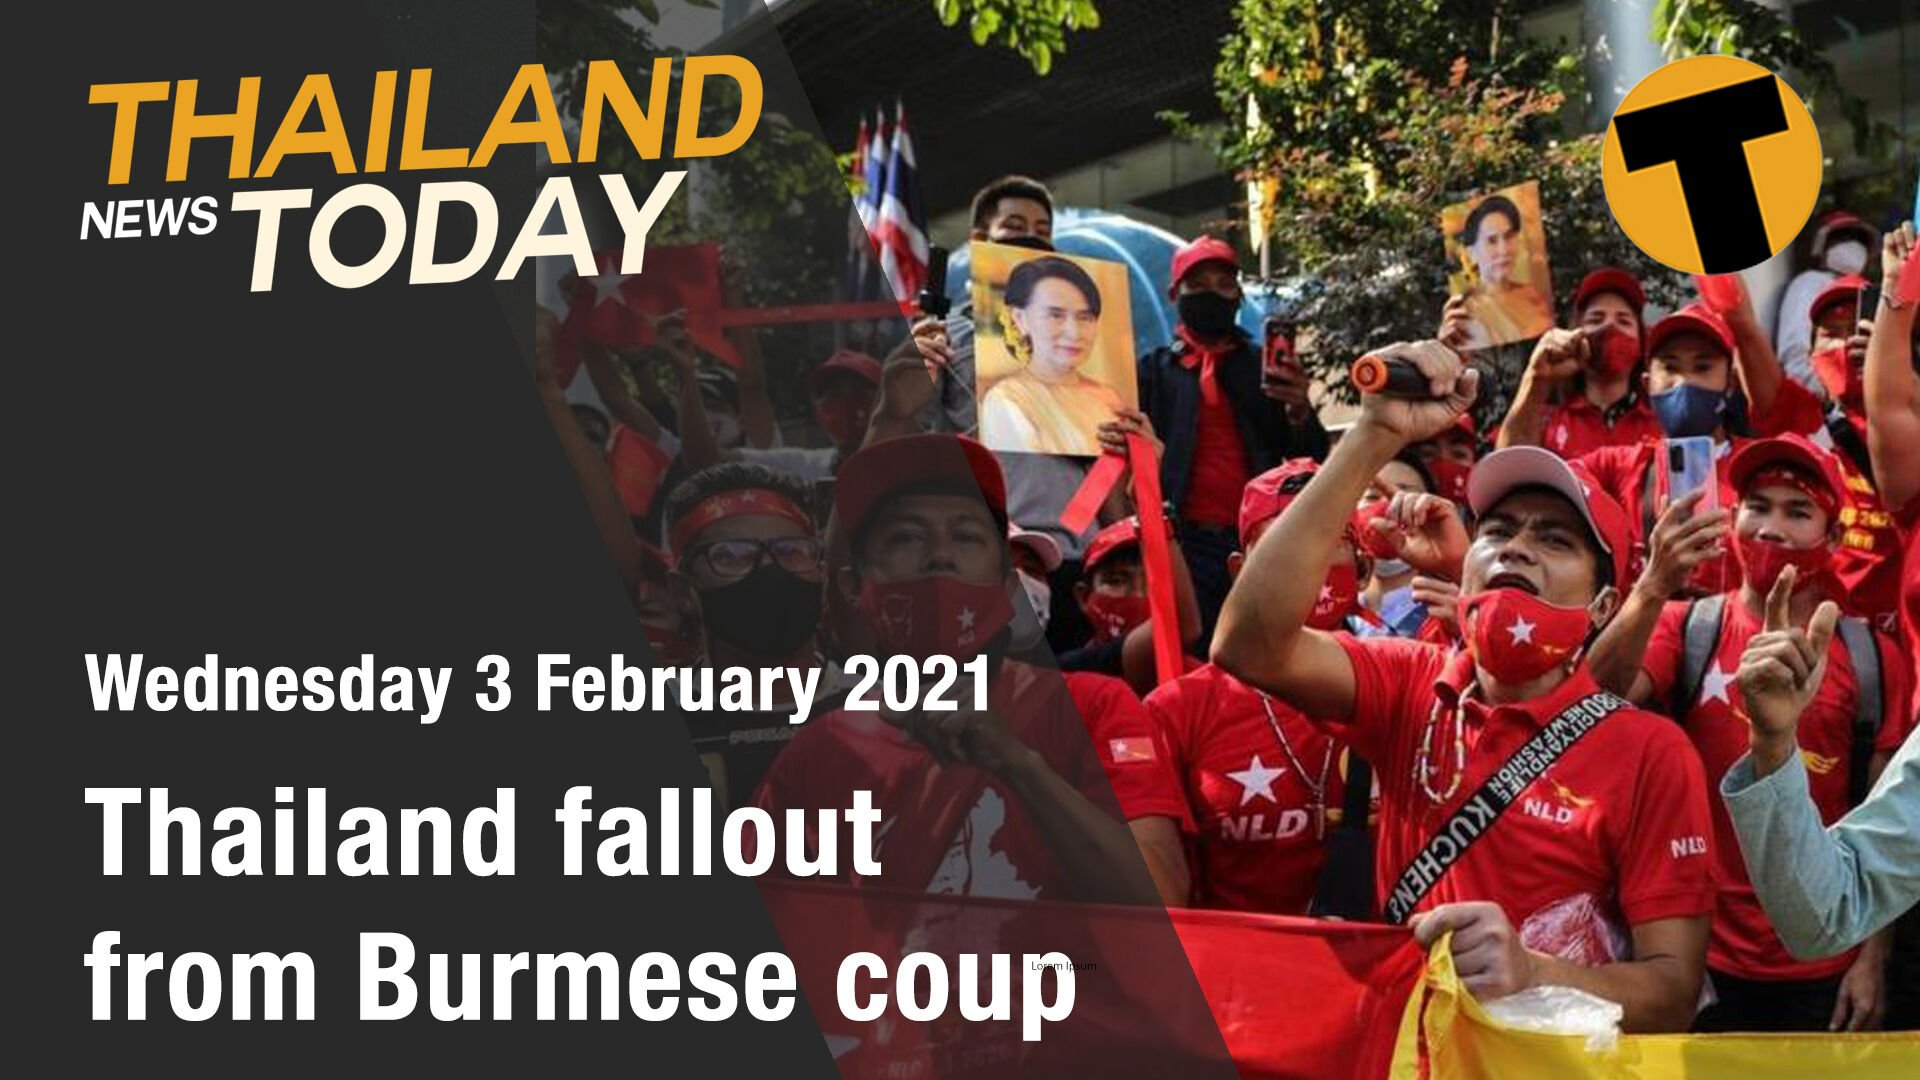 Thailand News Today | Thailand fallout from Burmese coup | February 3 | The Thaiger